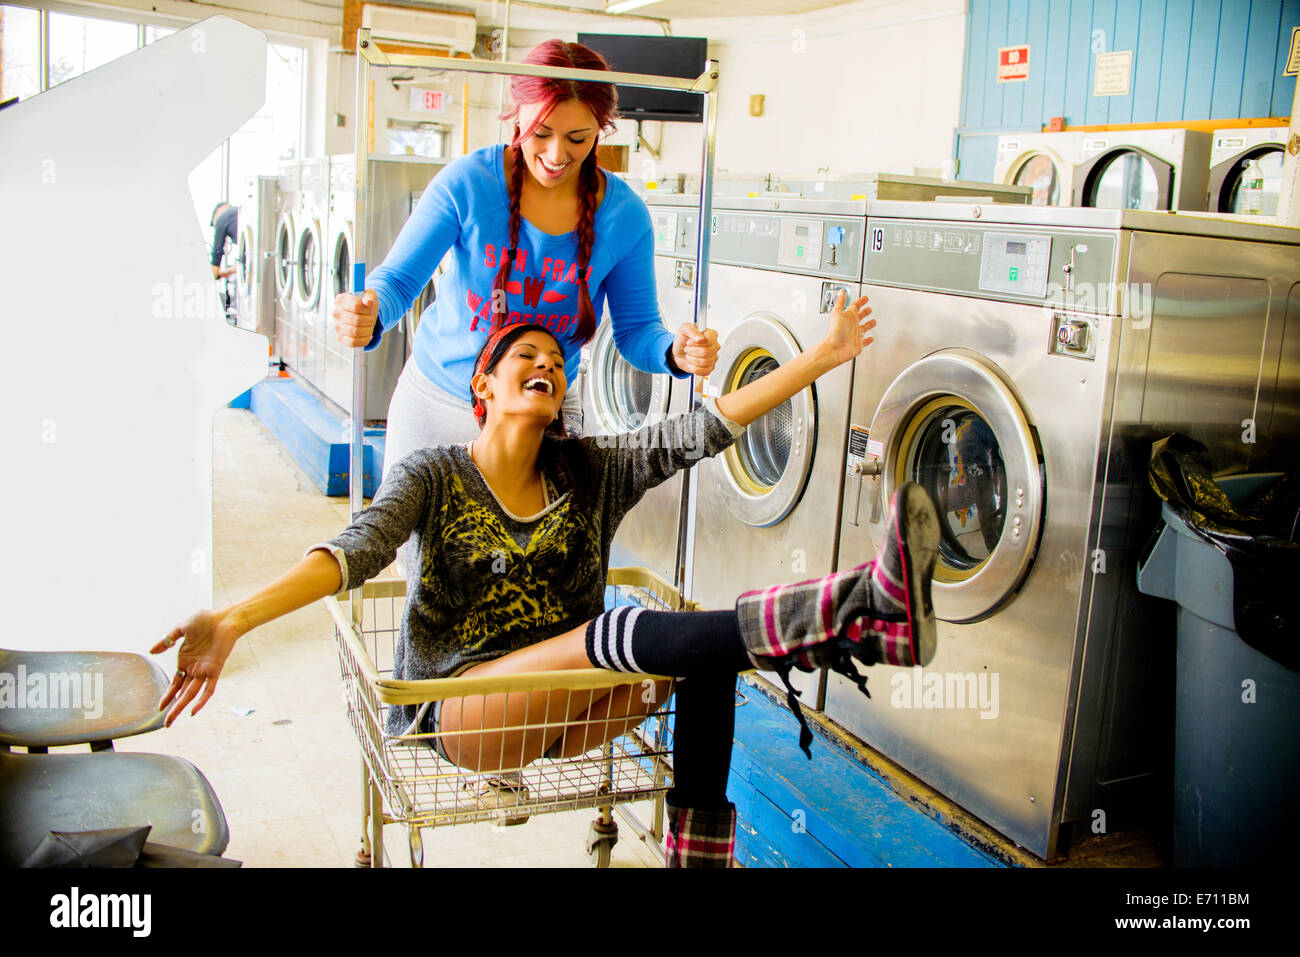 Two young women in laundromat, one pushing the other along in trolley - Stock Image